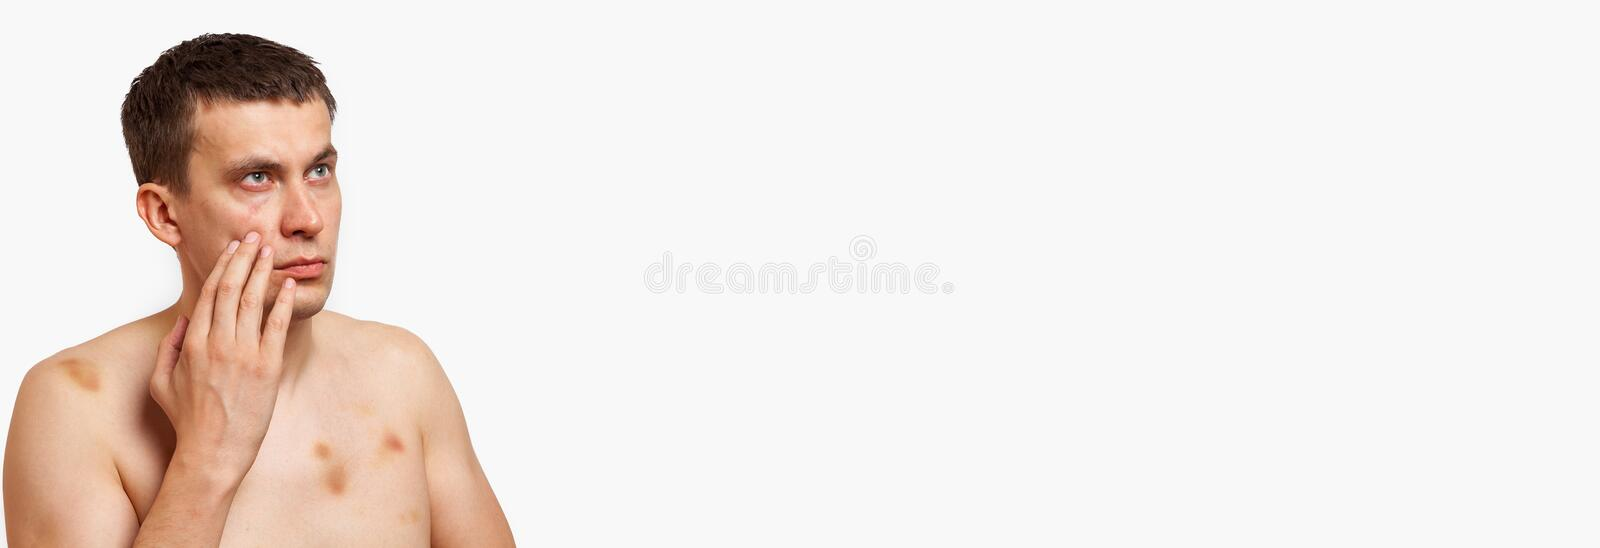 Brunette man with bruises on his body holds hand to his head in pain after a fight on a white banner isolated background royalty free stock image